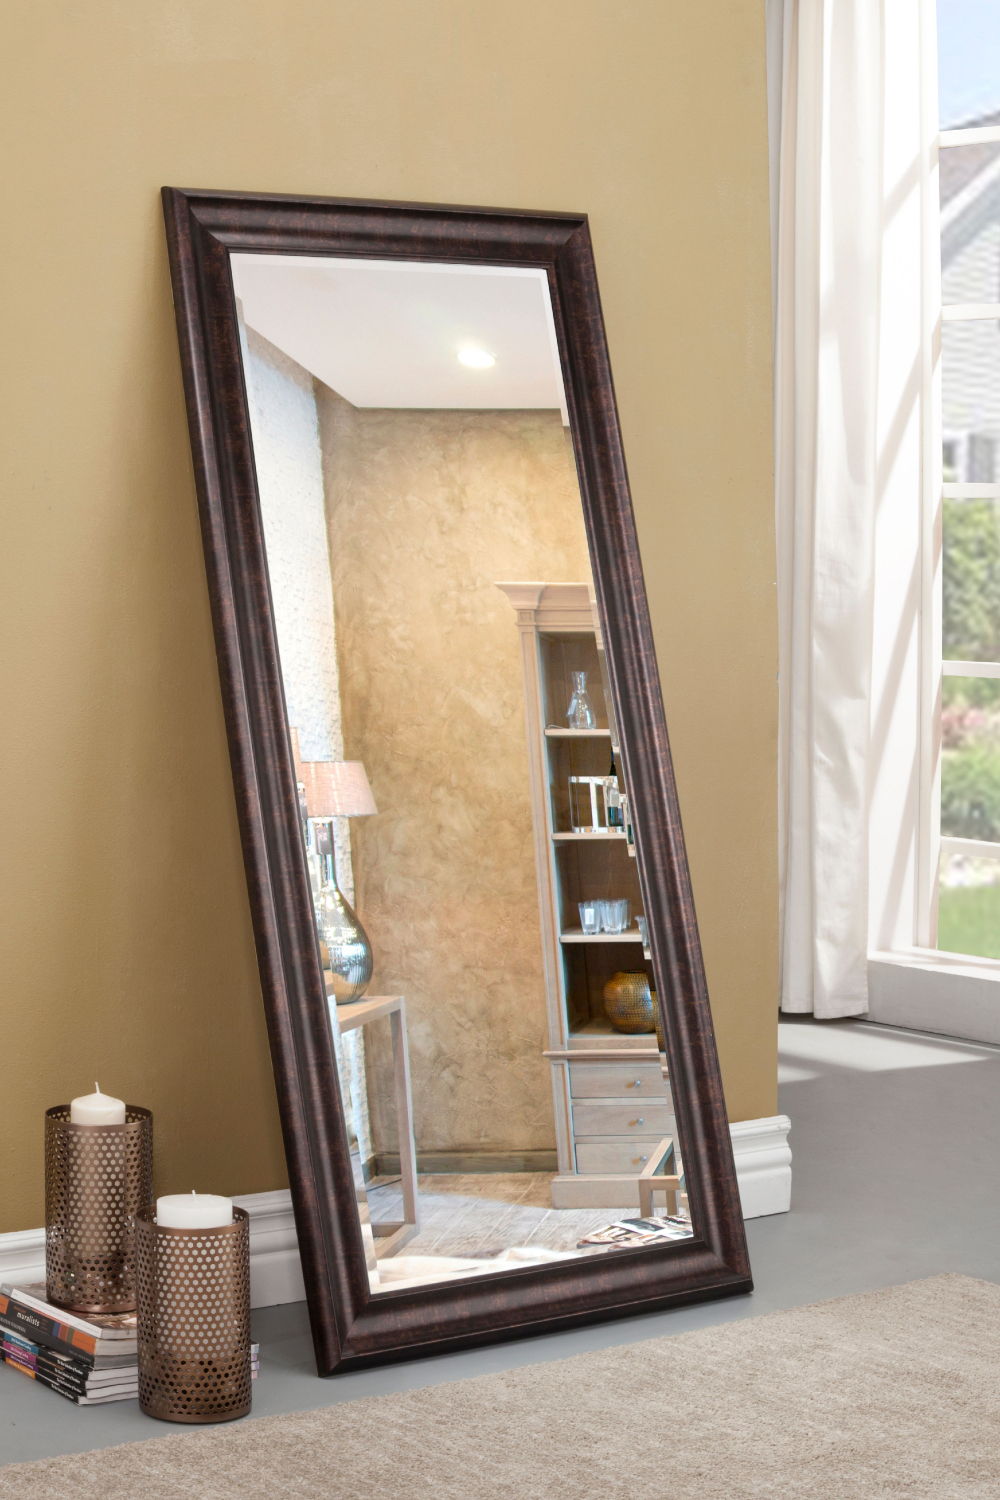 Large Full Body Mirror Wall Leaning Floor Living Room ...